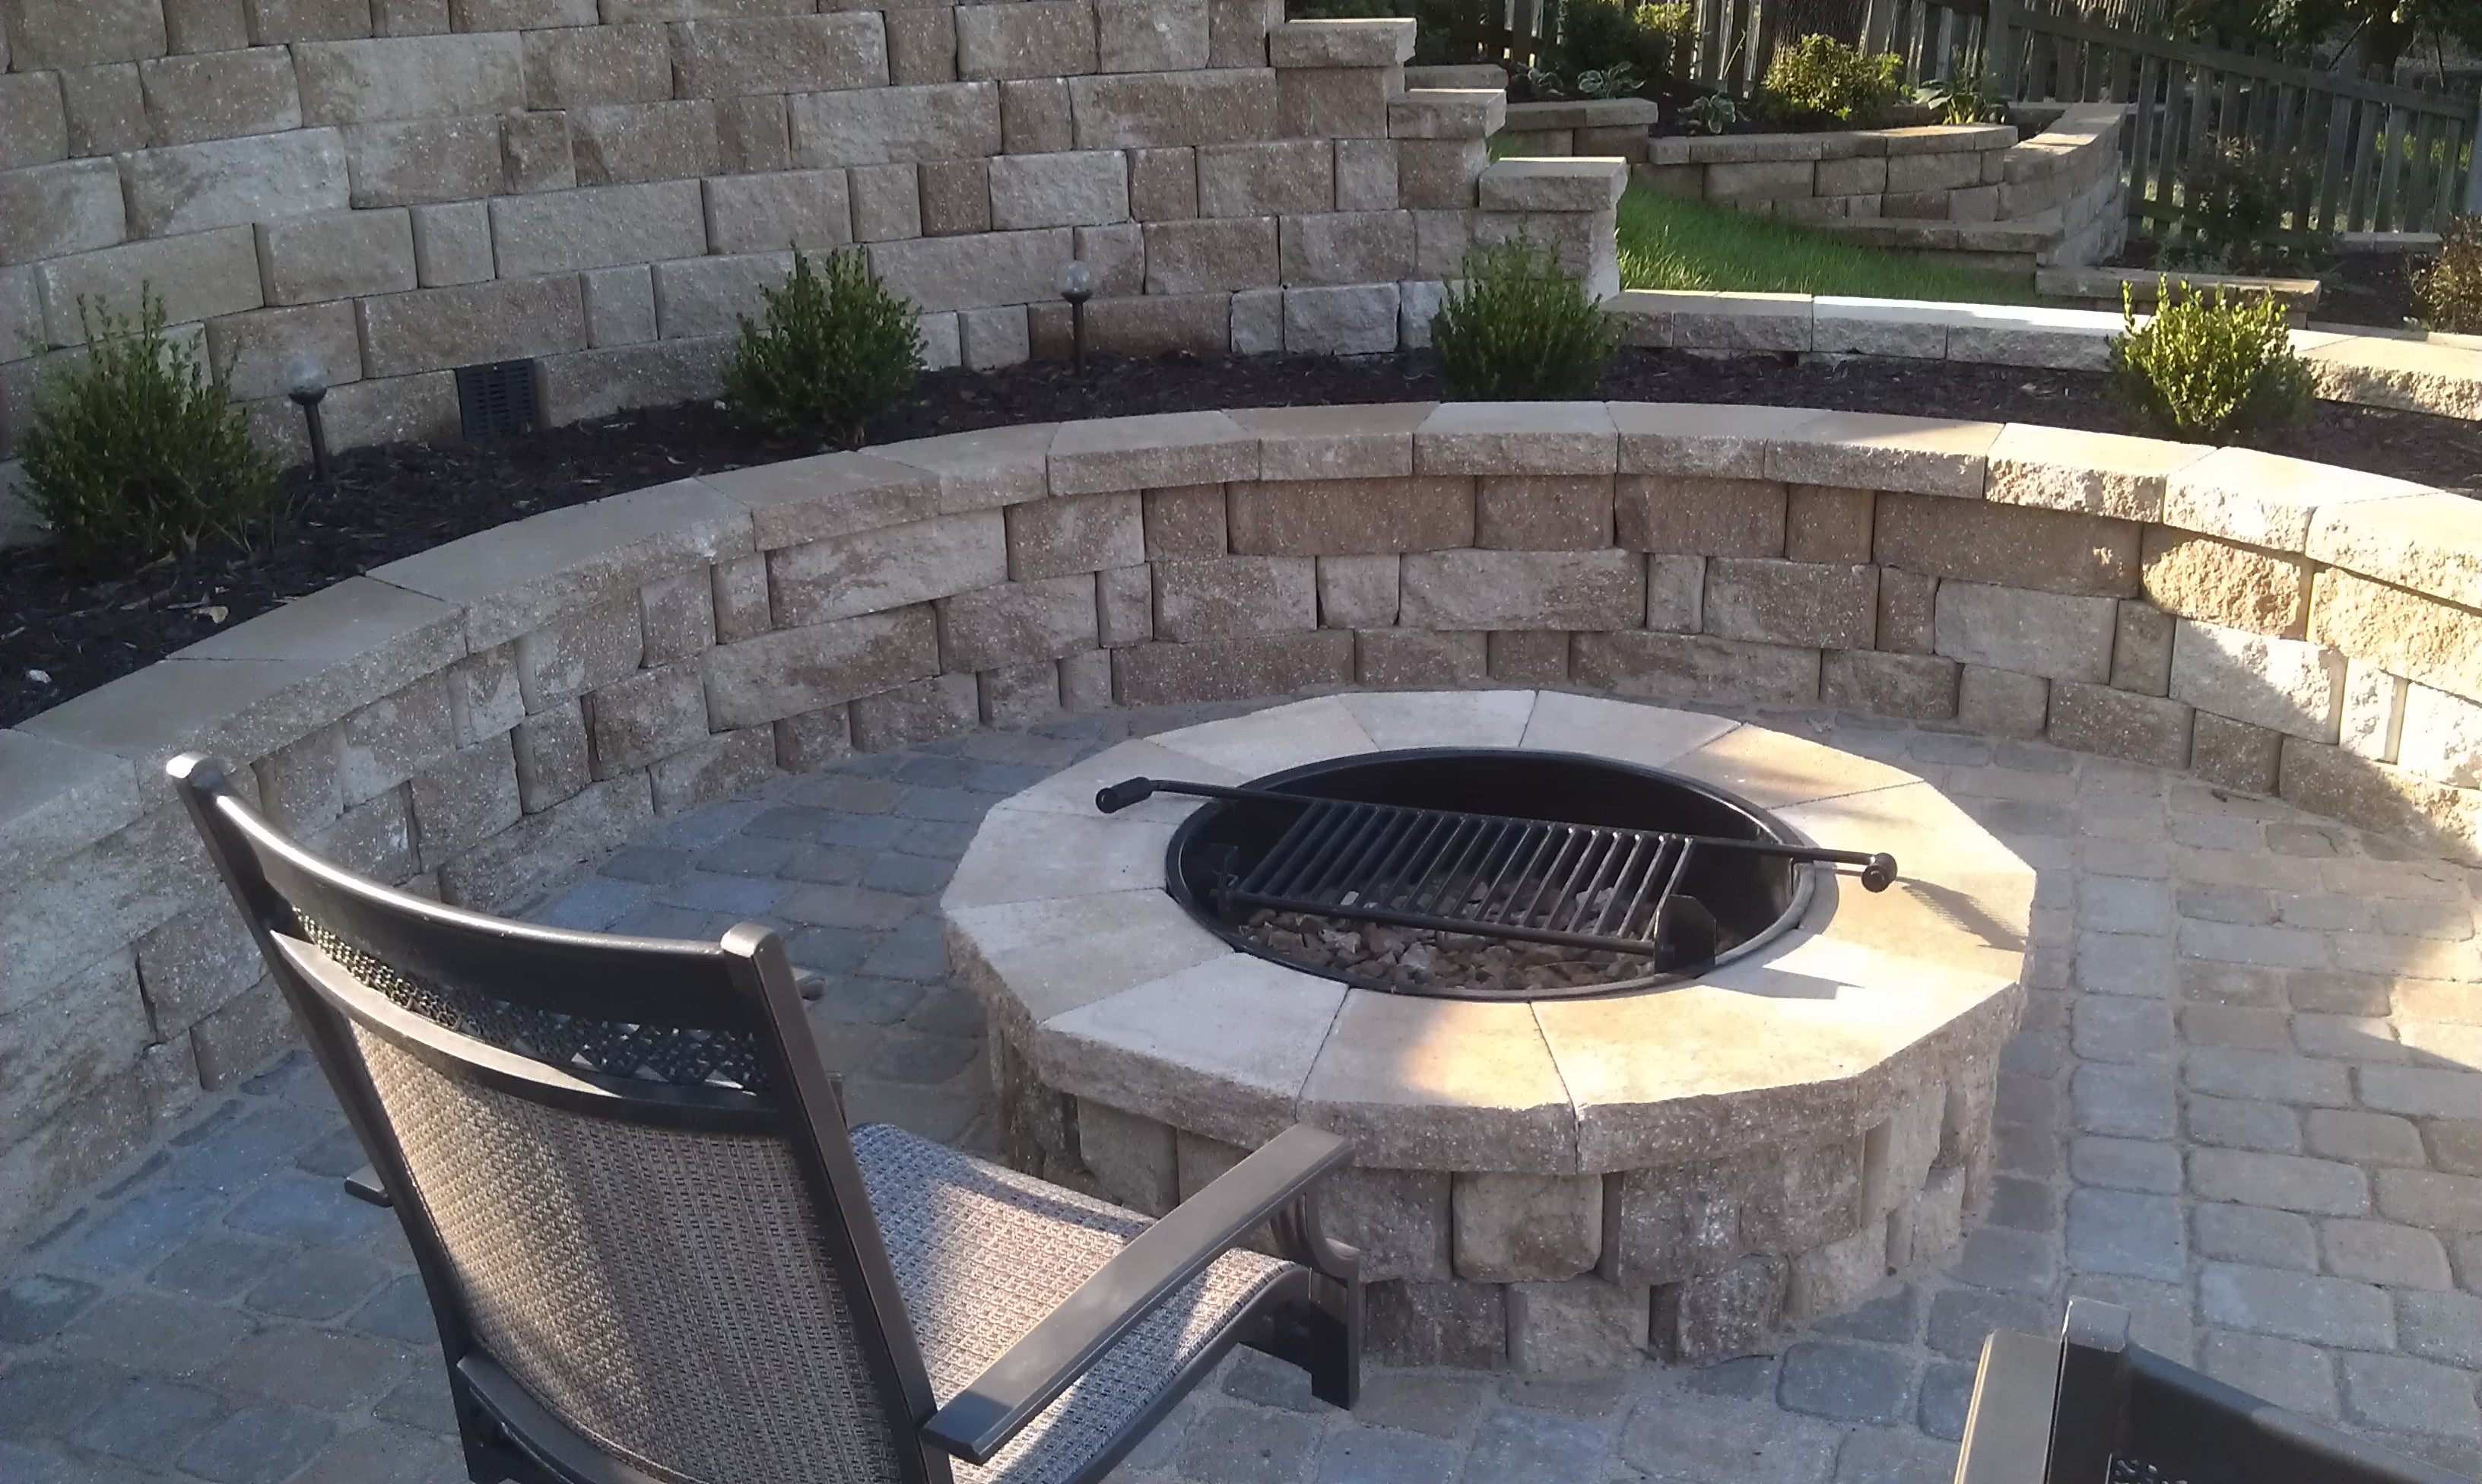 #4 - Close up view of fire pit